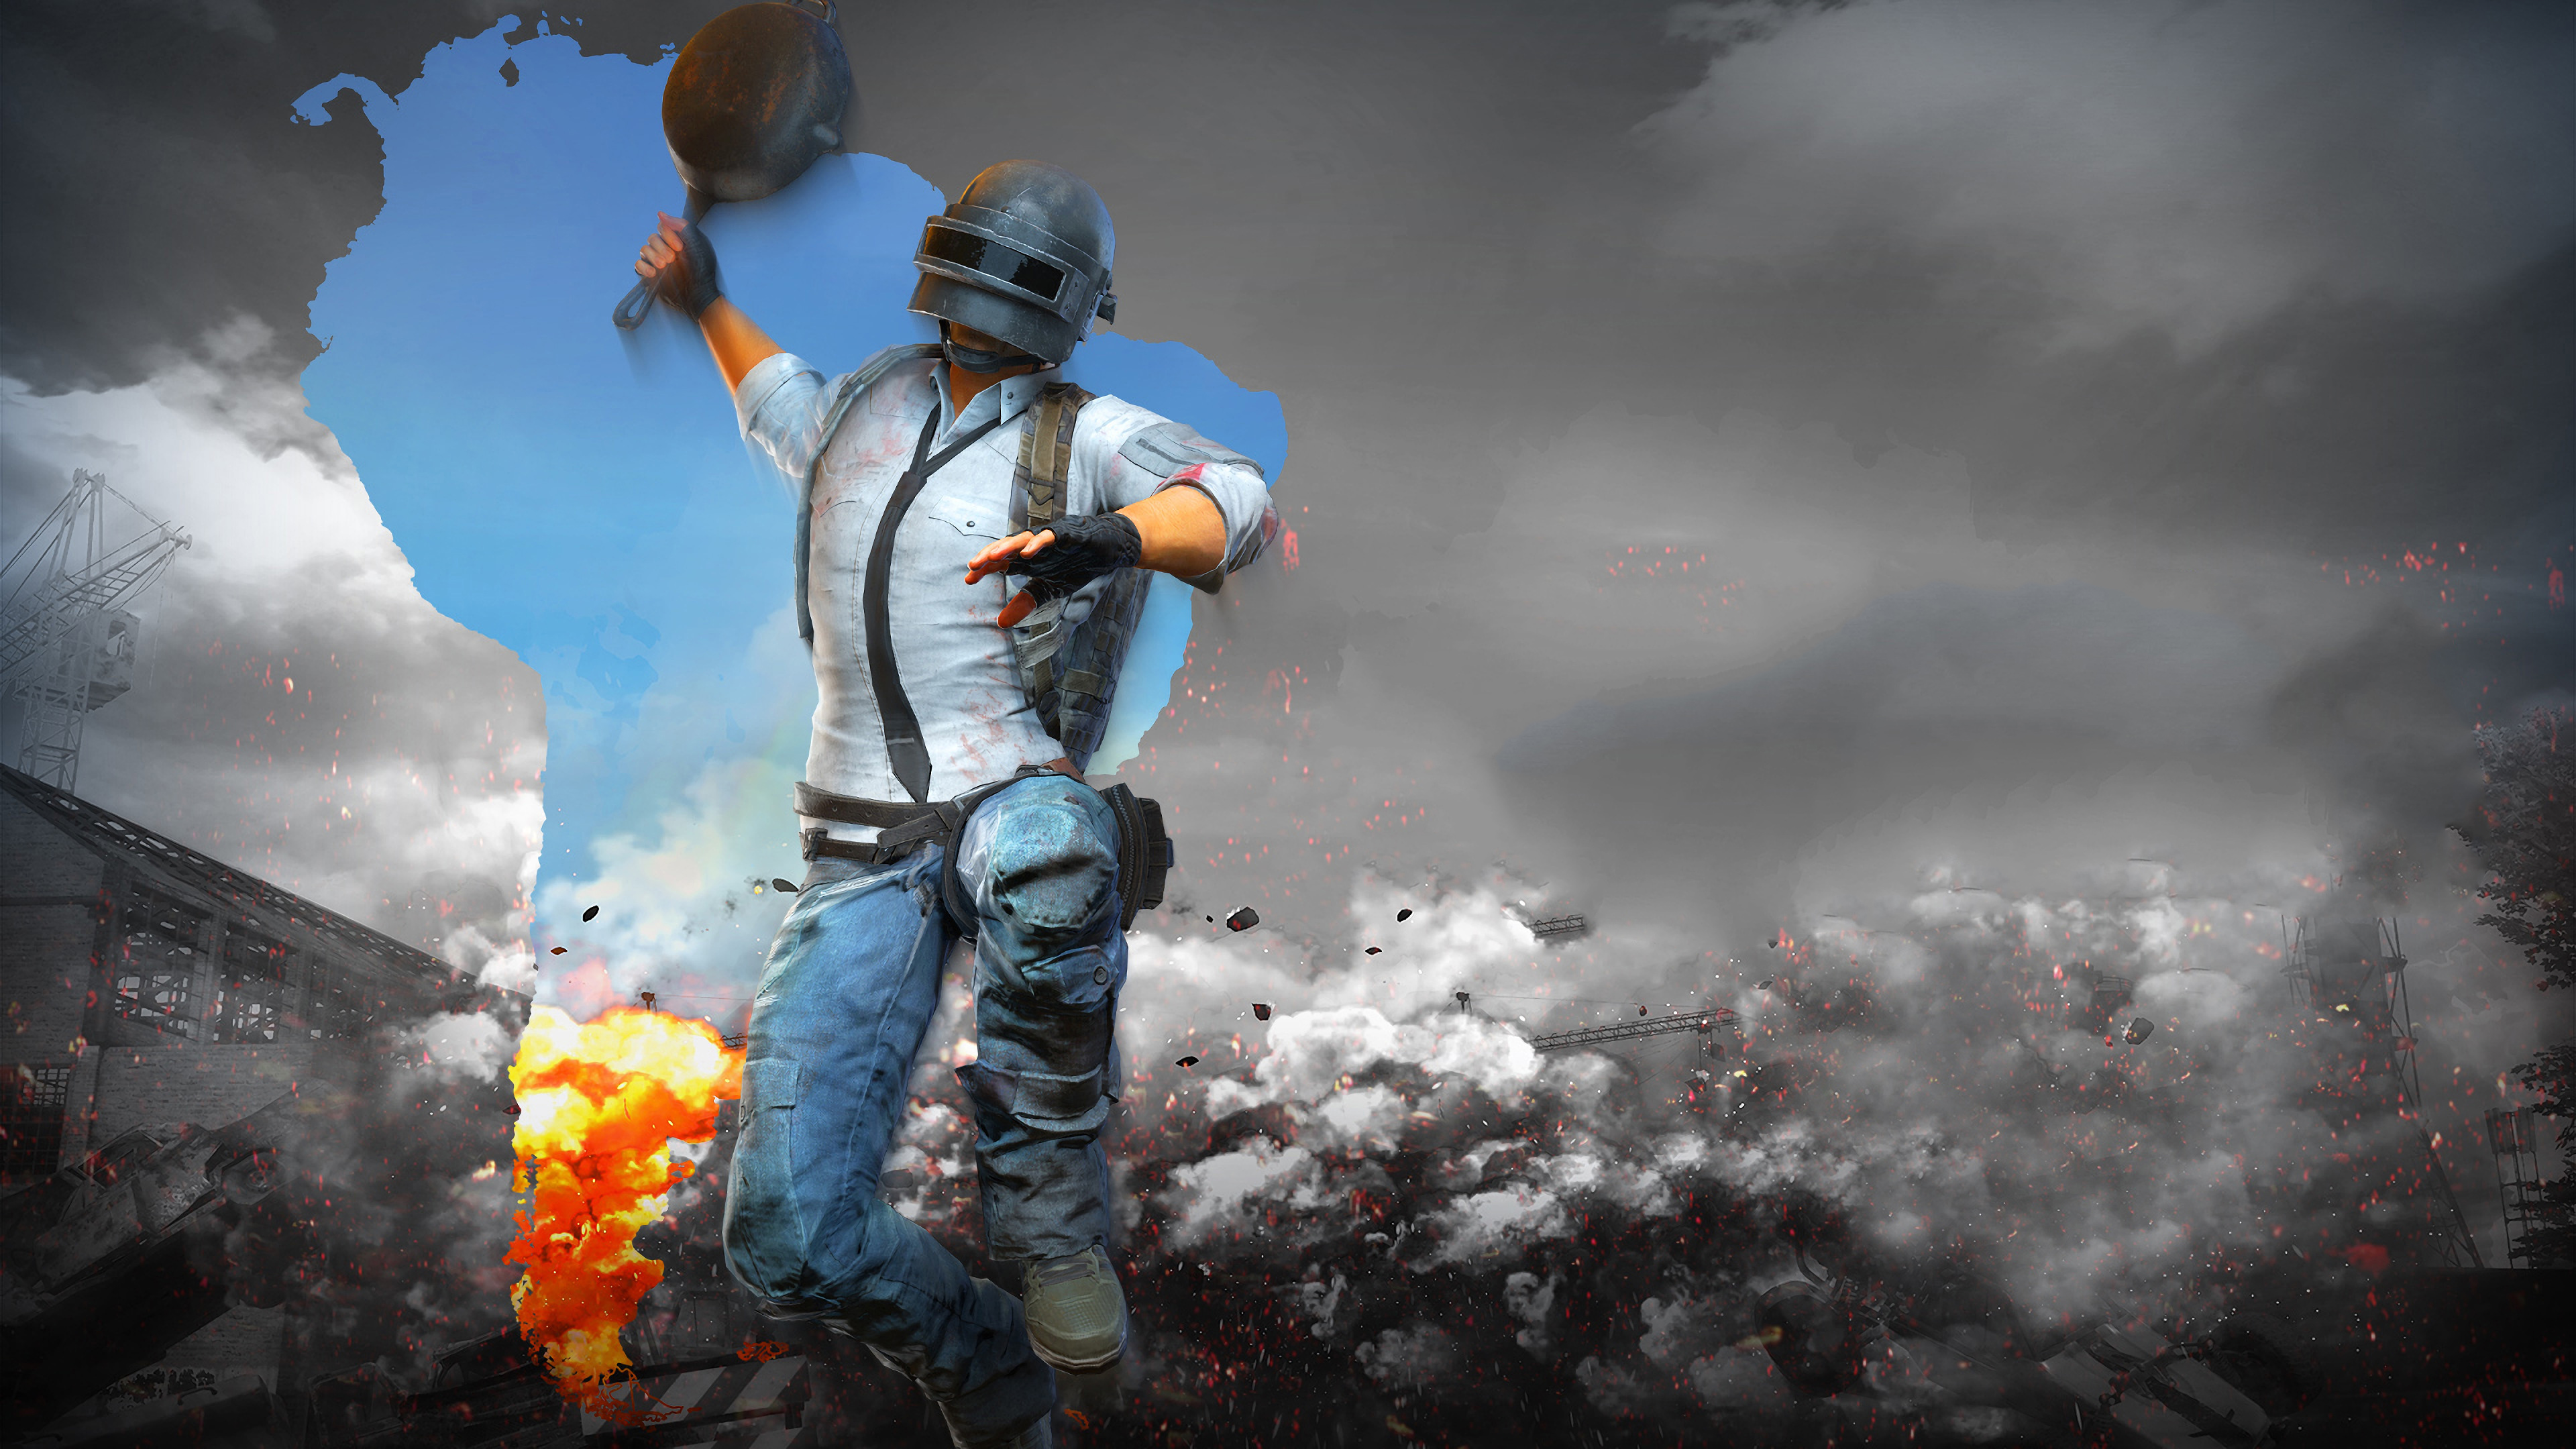 Top 13 Pubg Wallpapers In Full Hd For Pc And Phone: PUBG Helmet Man With Pan 4k, HD Games, 4k Wallpapers